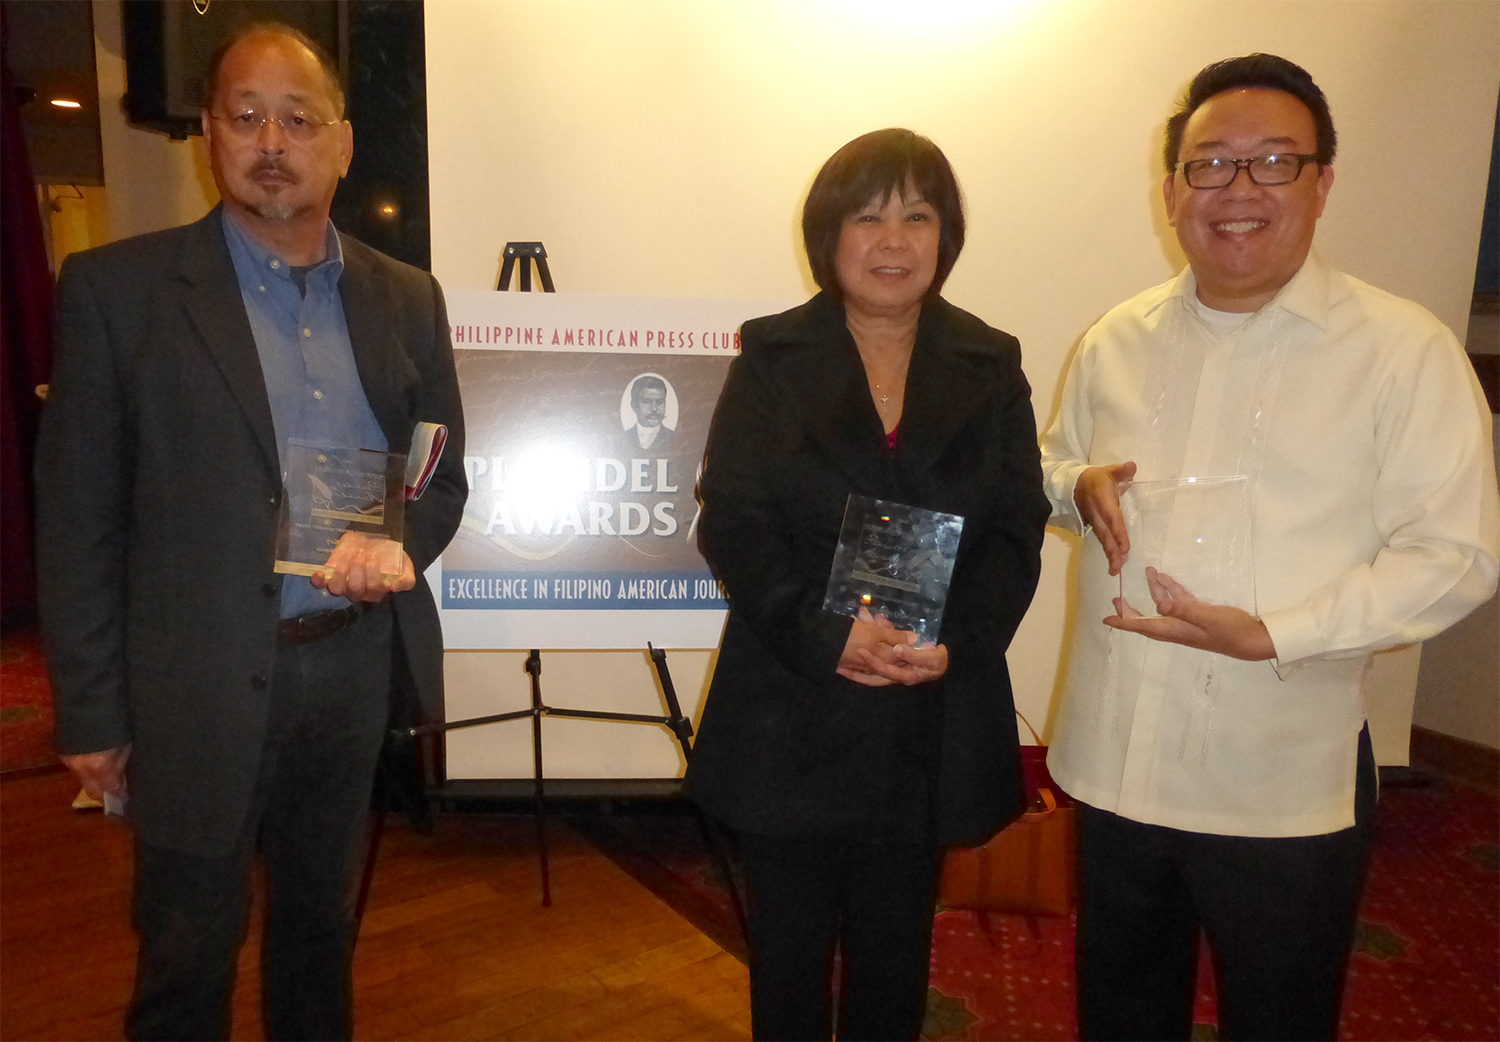 Positively Filipino's Rene Ciria-Cruz, Gemma Nemenzo and Raymond Virata accept the 2013 Plaridel Awards on behalf of winners Lotis Key, Francis Calpotura and Elizabeth Ann Quirino.  (Photo by I. Wilfredo Ver)